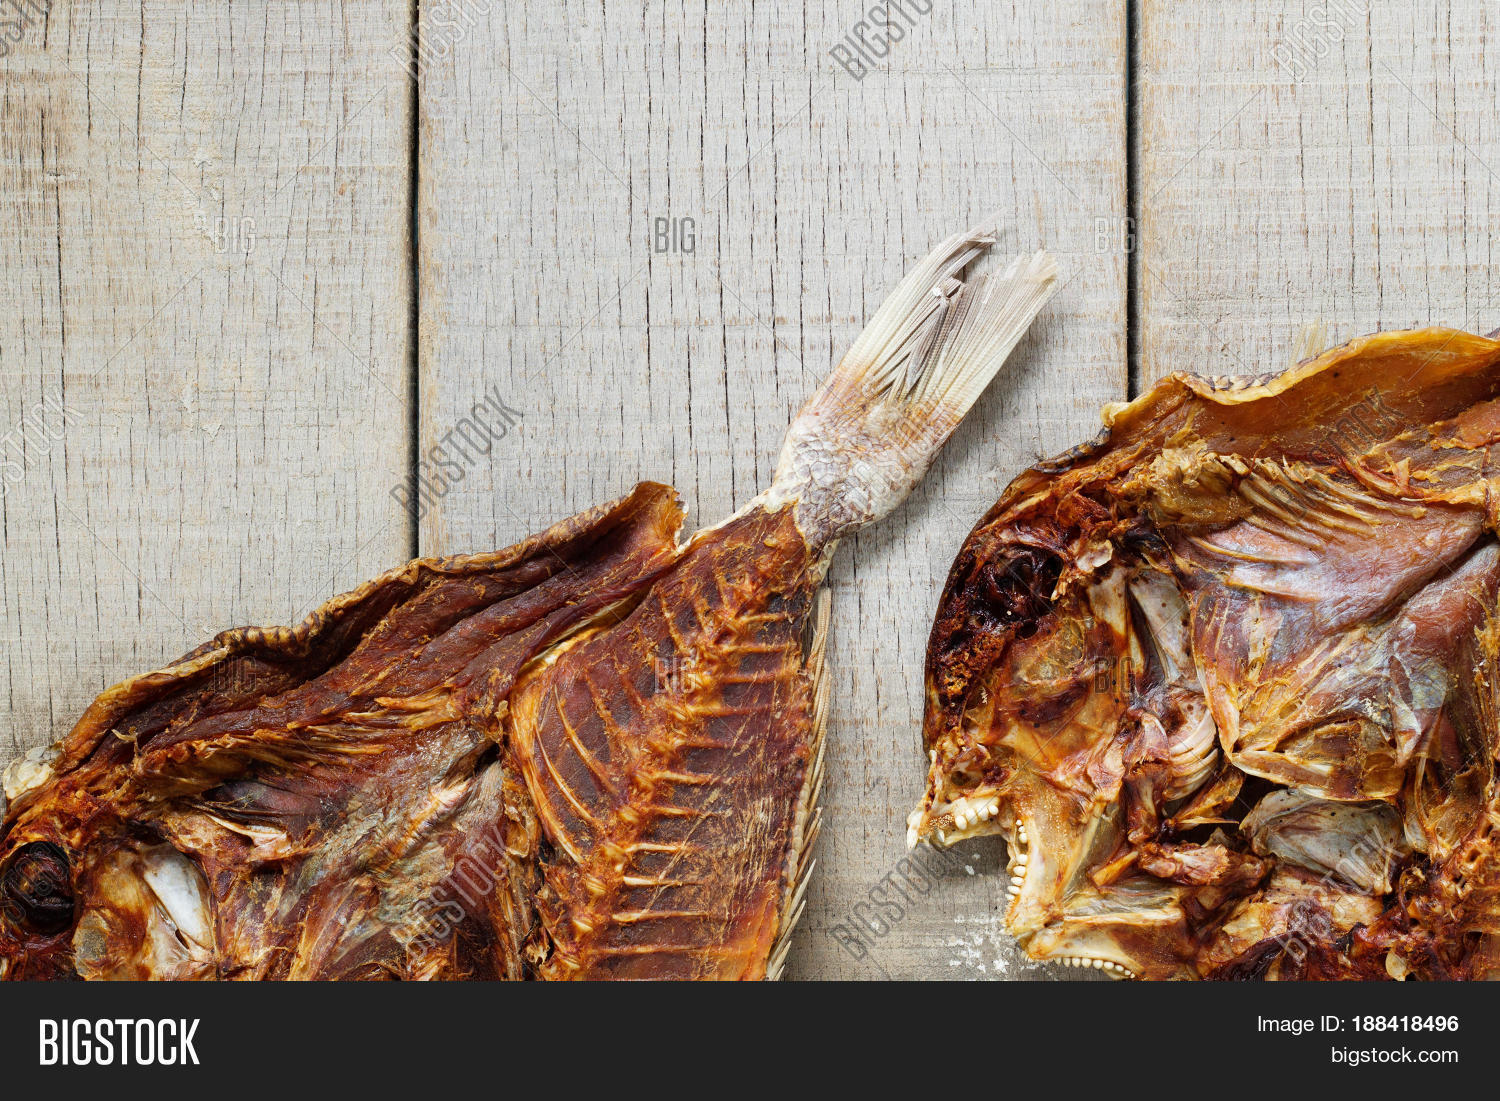 Dried salted fish on old wooden image photo bigstock for Dried salted fish